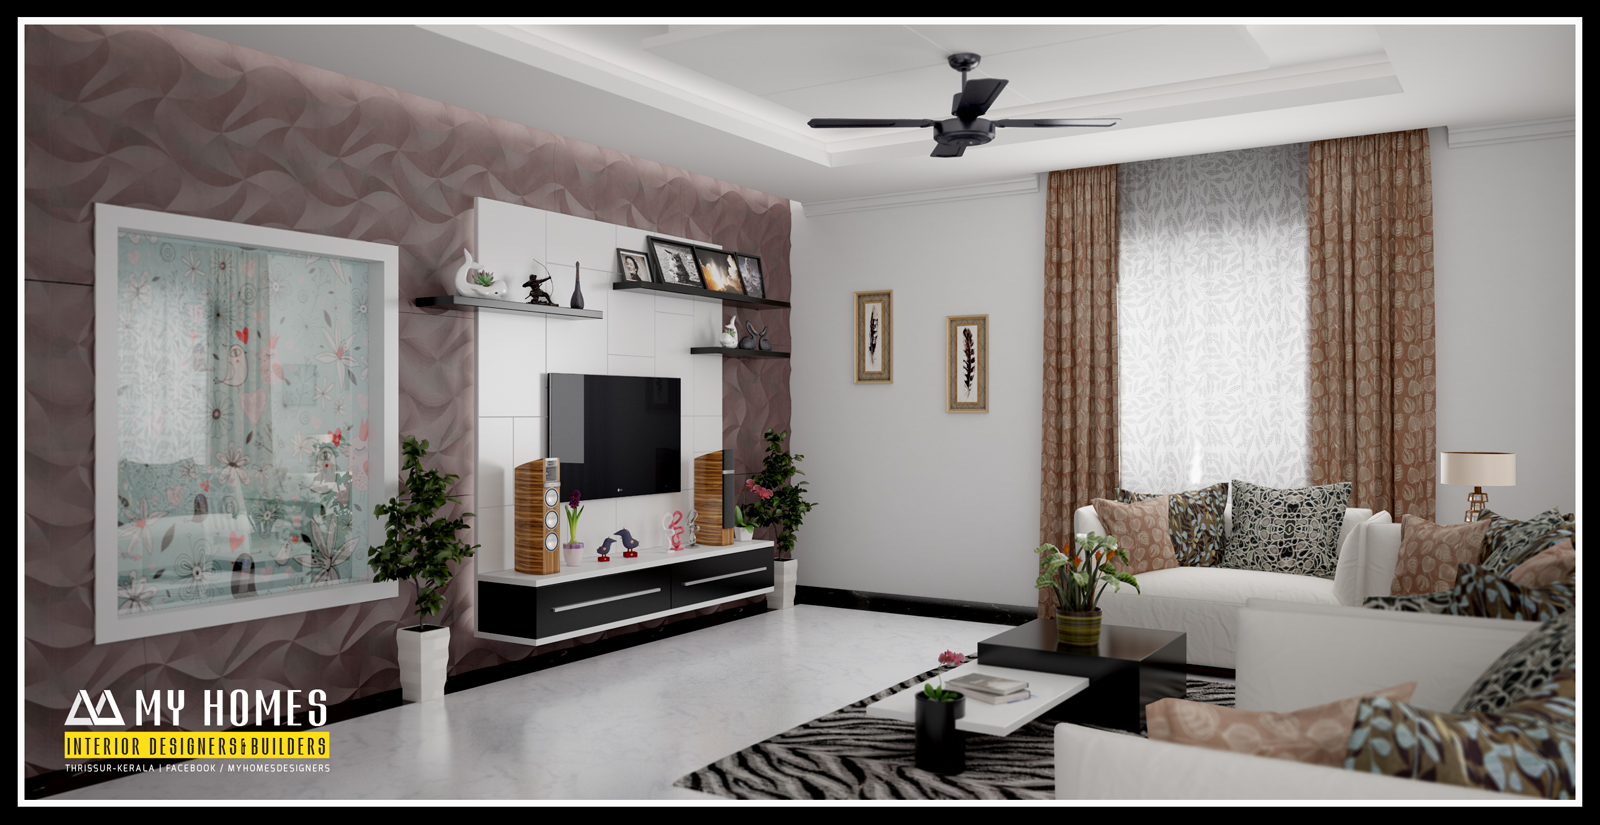 Kerala interior design ideas from designing company thrissur Pictures of new homes interior